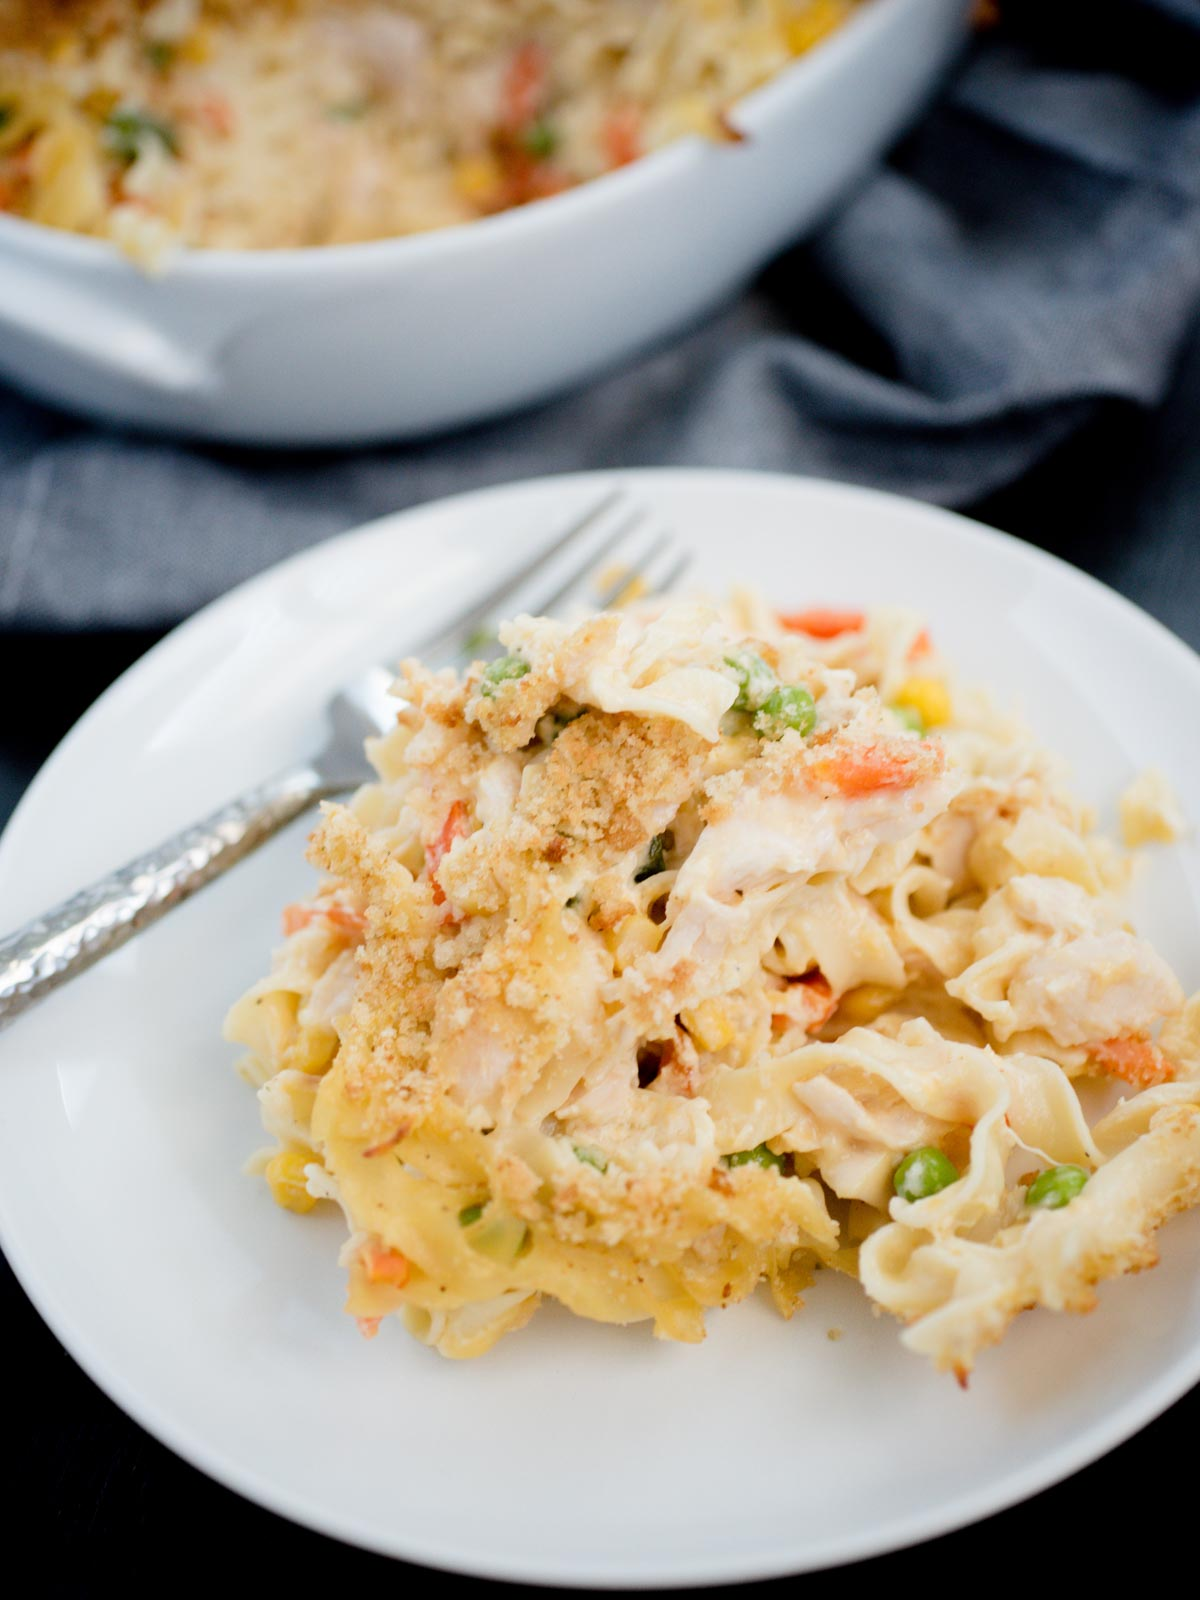 serving of chicken noodle casserole on white plate